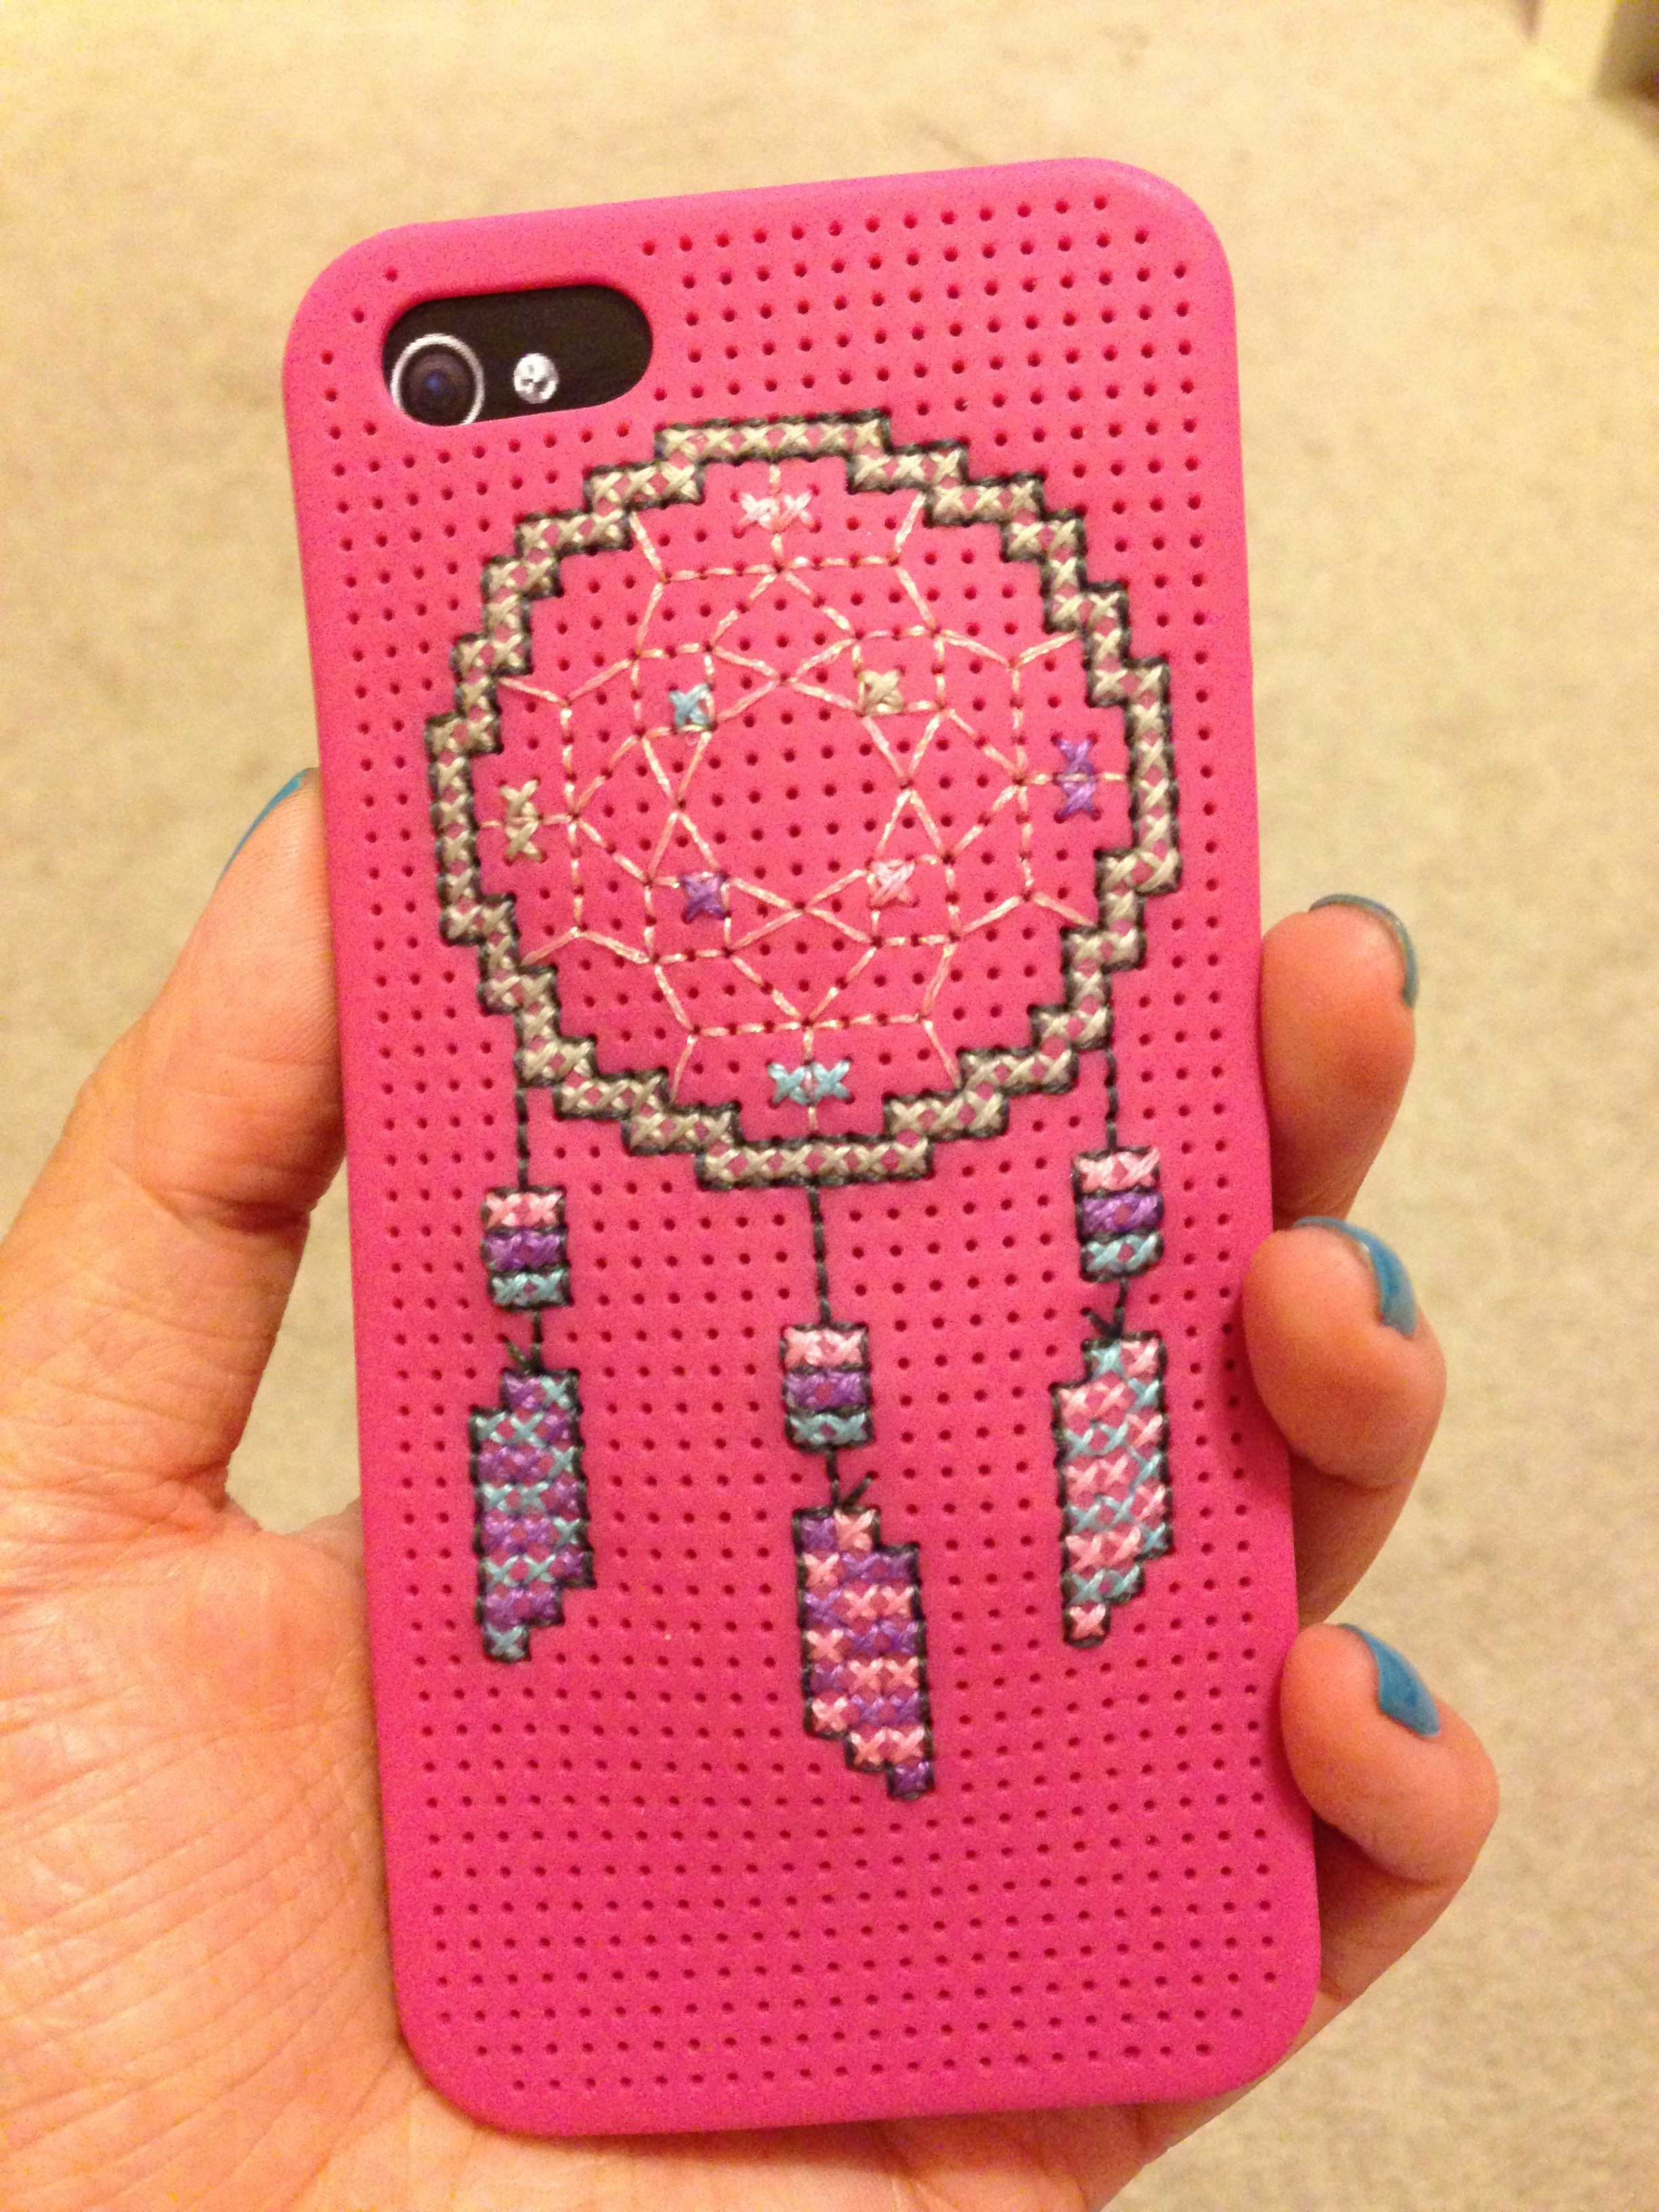 Best ideas about DIY Iphone Case Kit . Save or Pin DIY cross stitch iPhone case Download the hobby lobby app Now.